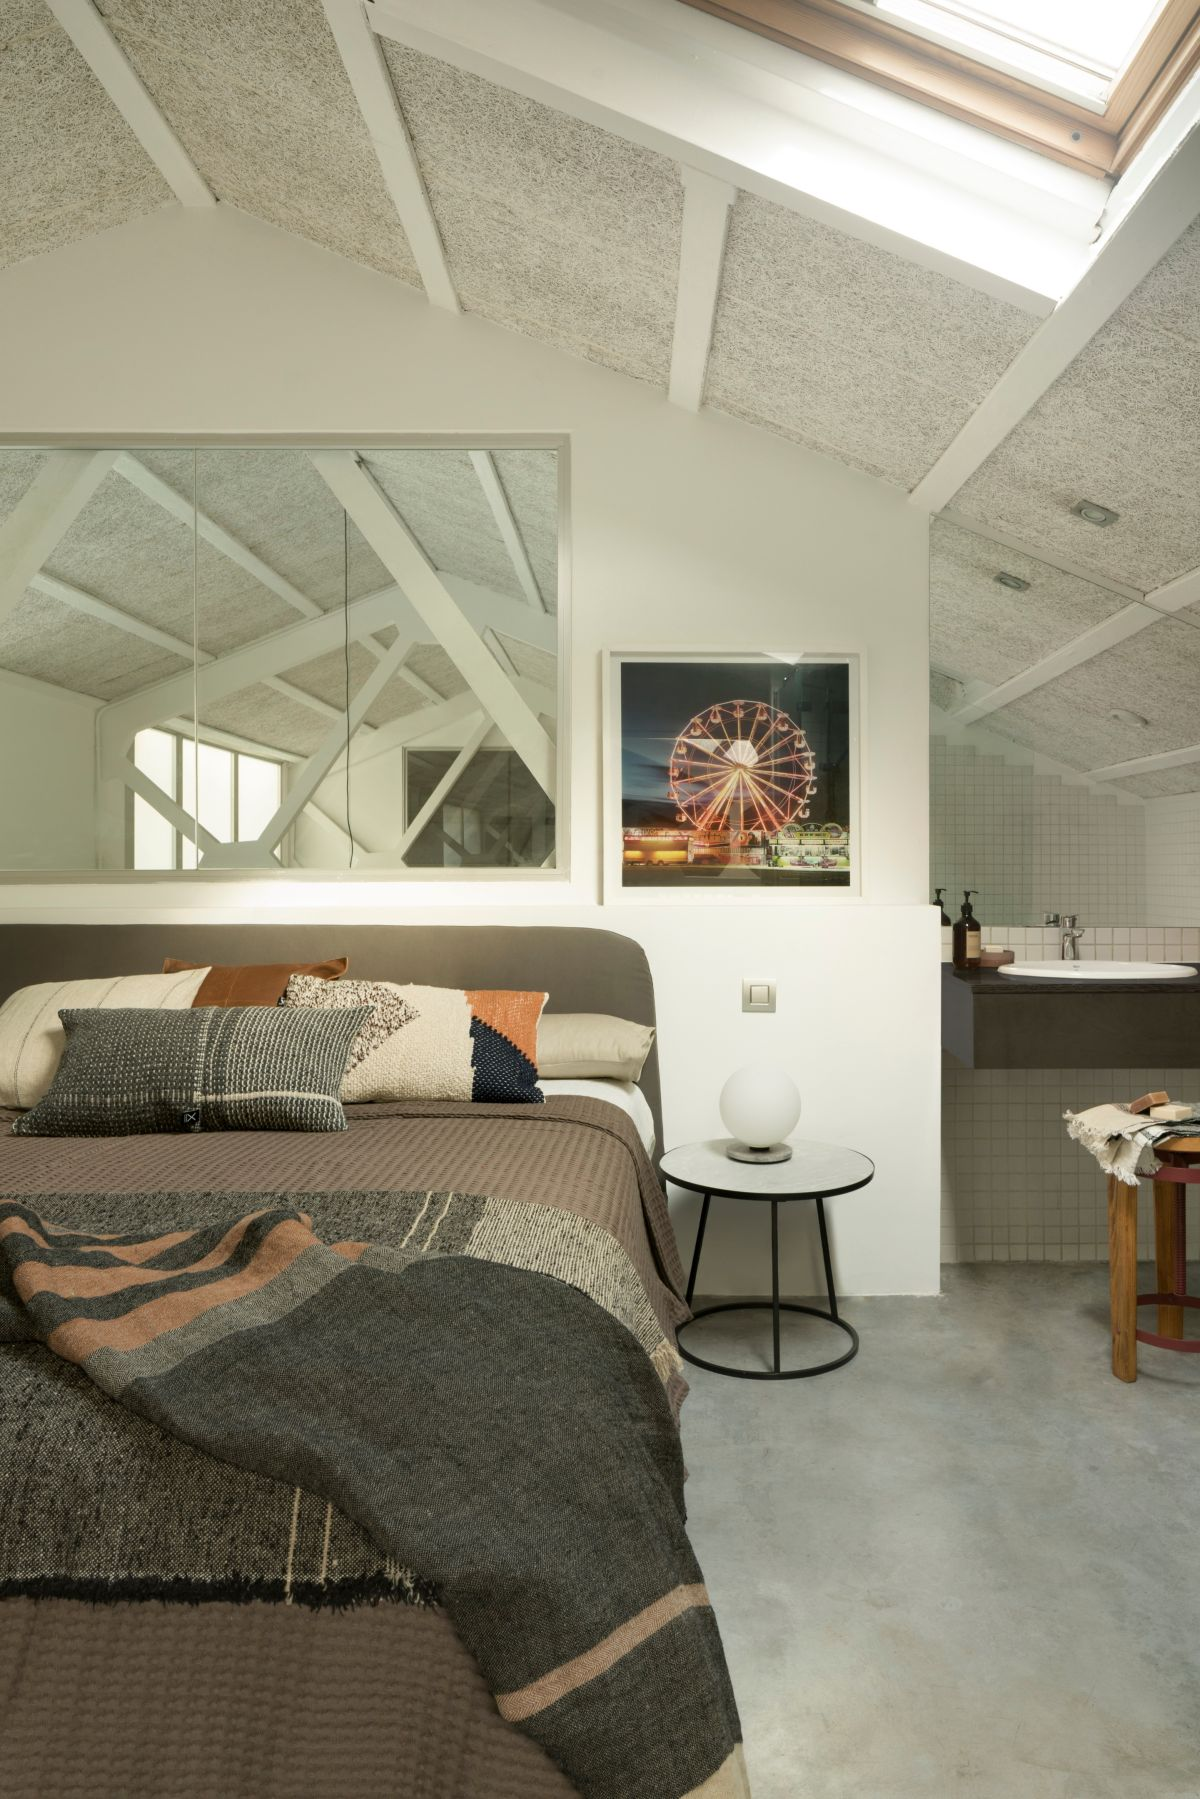 The private areas are extra cozy thanks to the pitched roof and the skylights